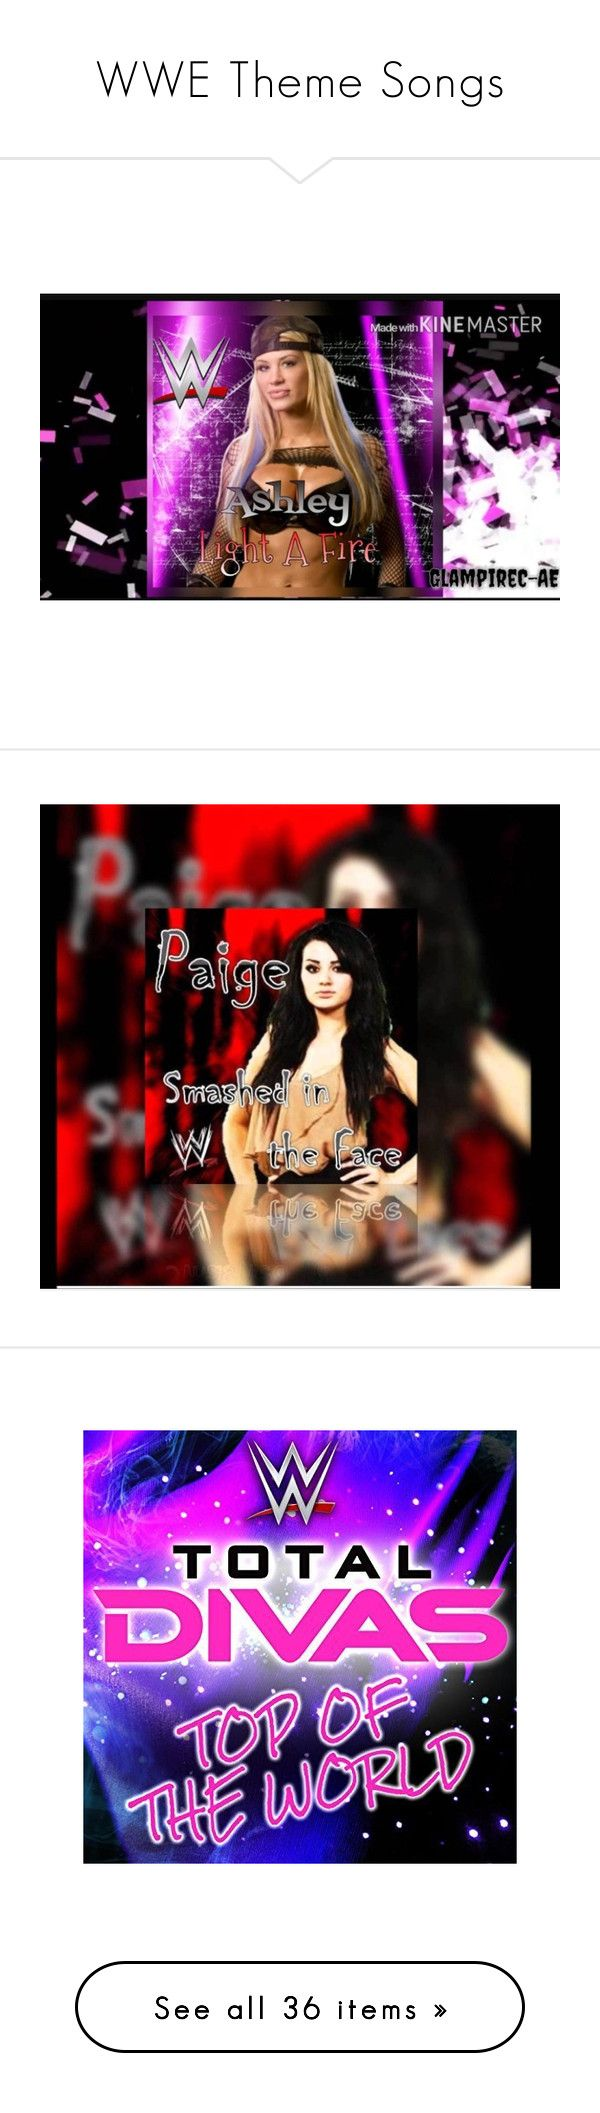 wwe theme songs by leeandbulletfan liked on polyvore featuring home and home decor